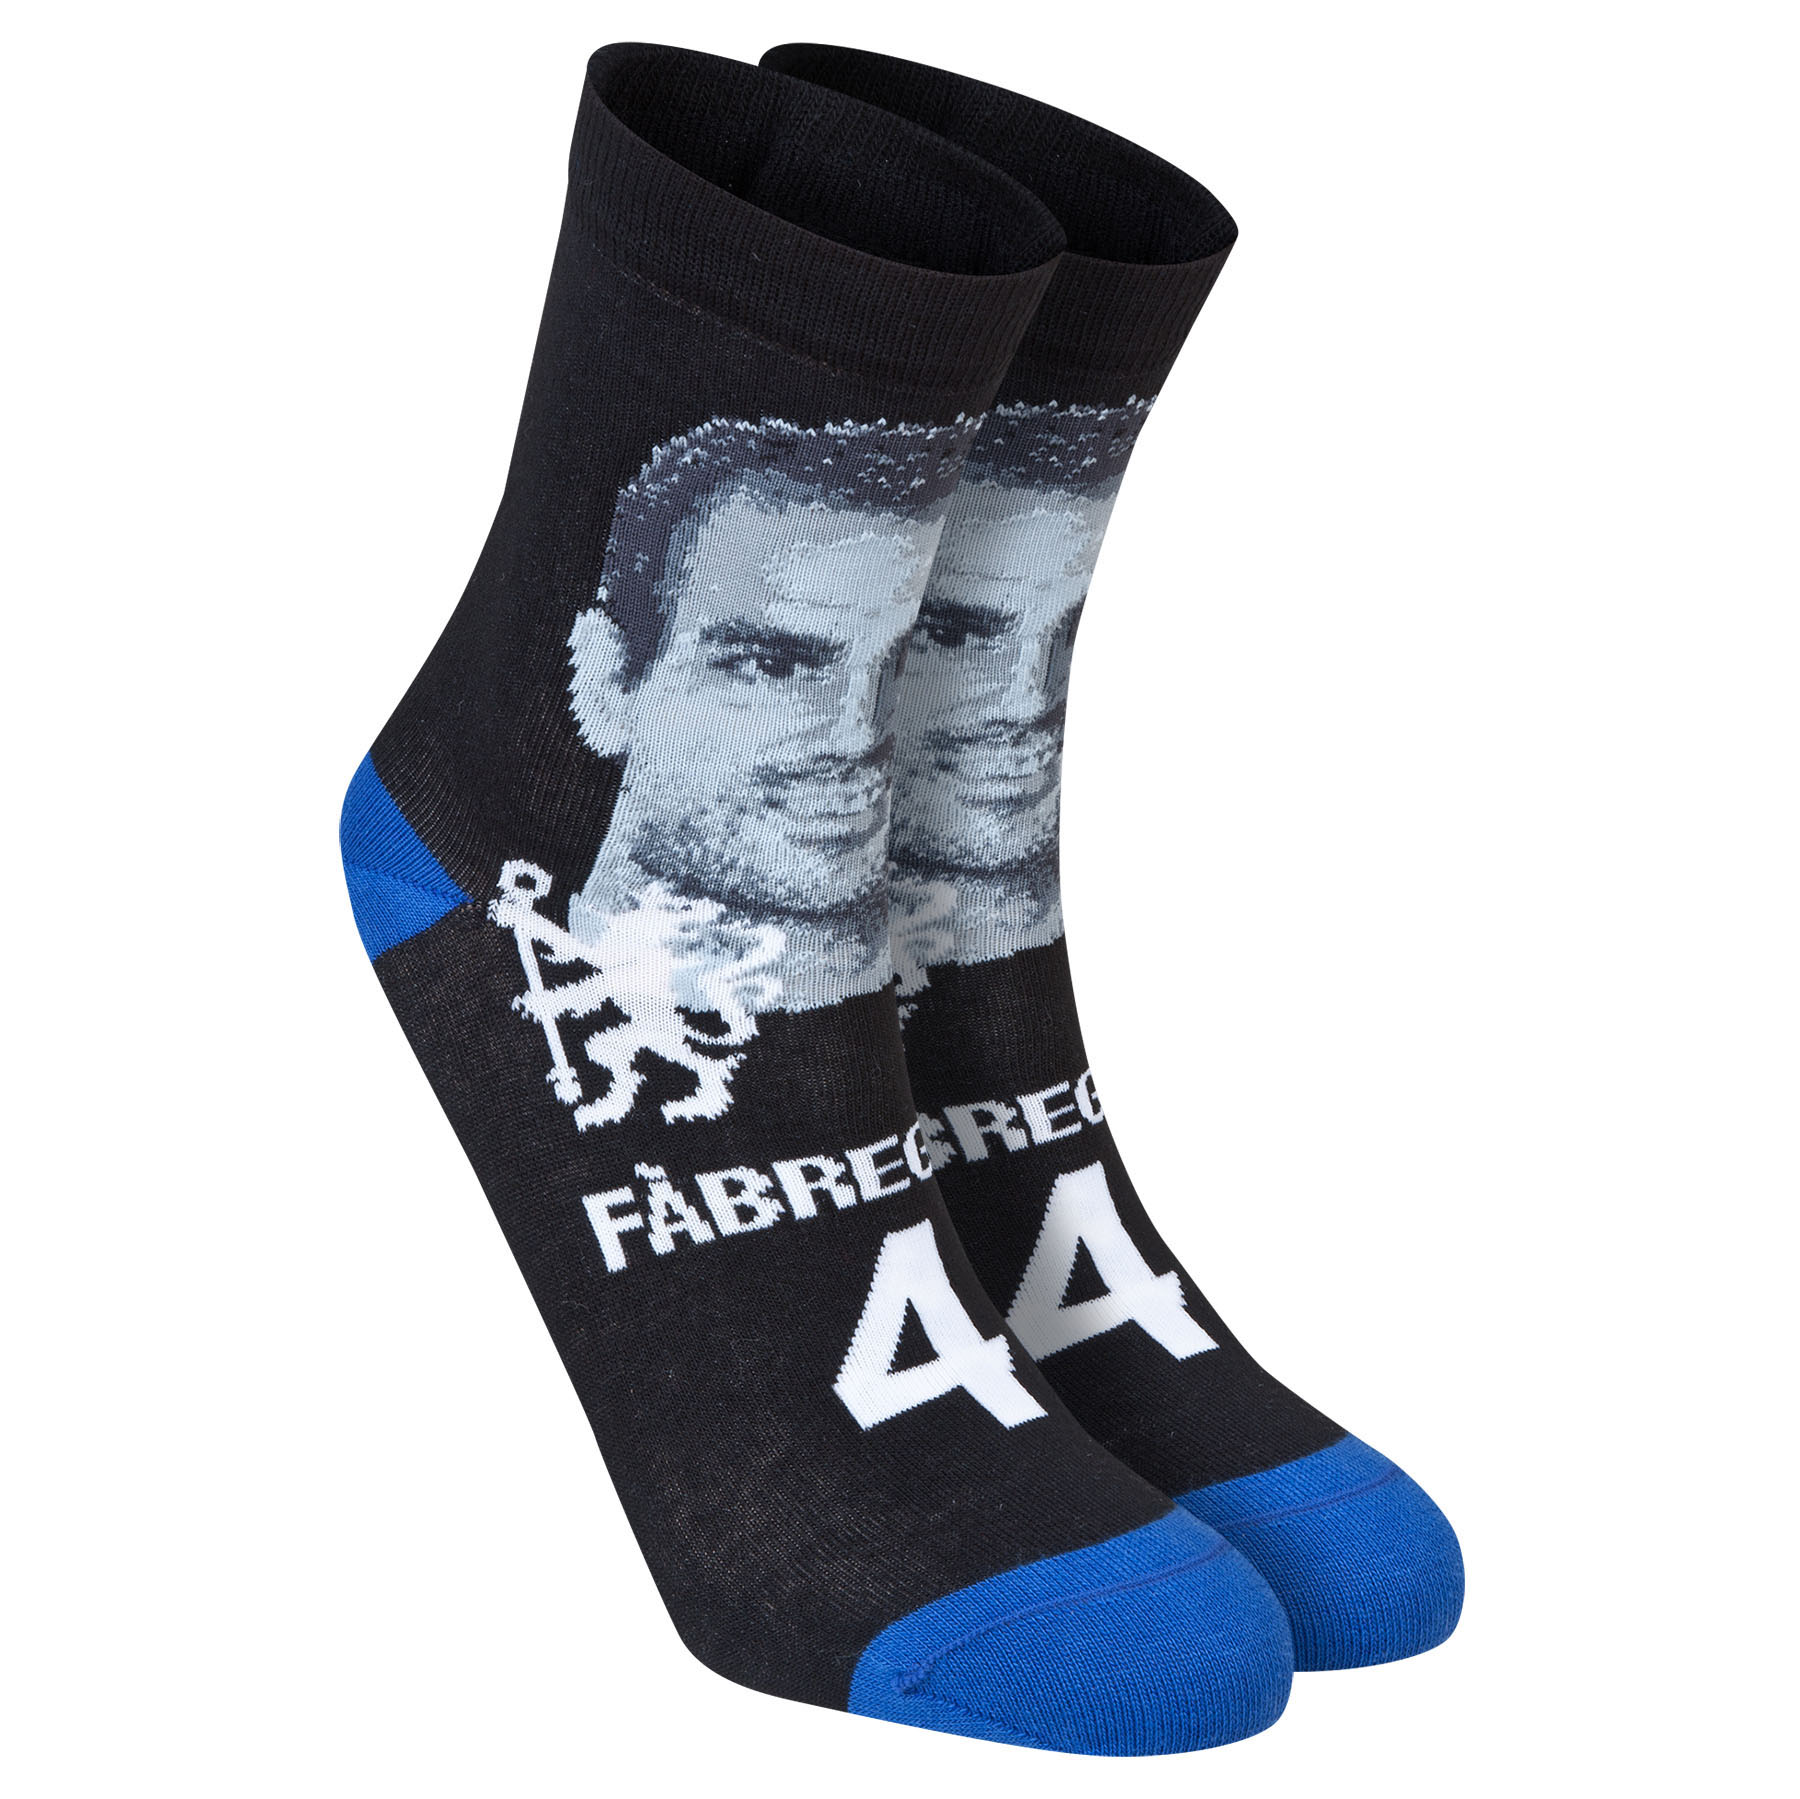 Chelsea Fabregas Player Socks - Black - Boys